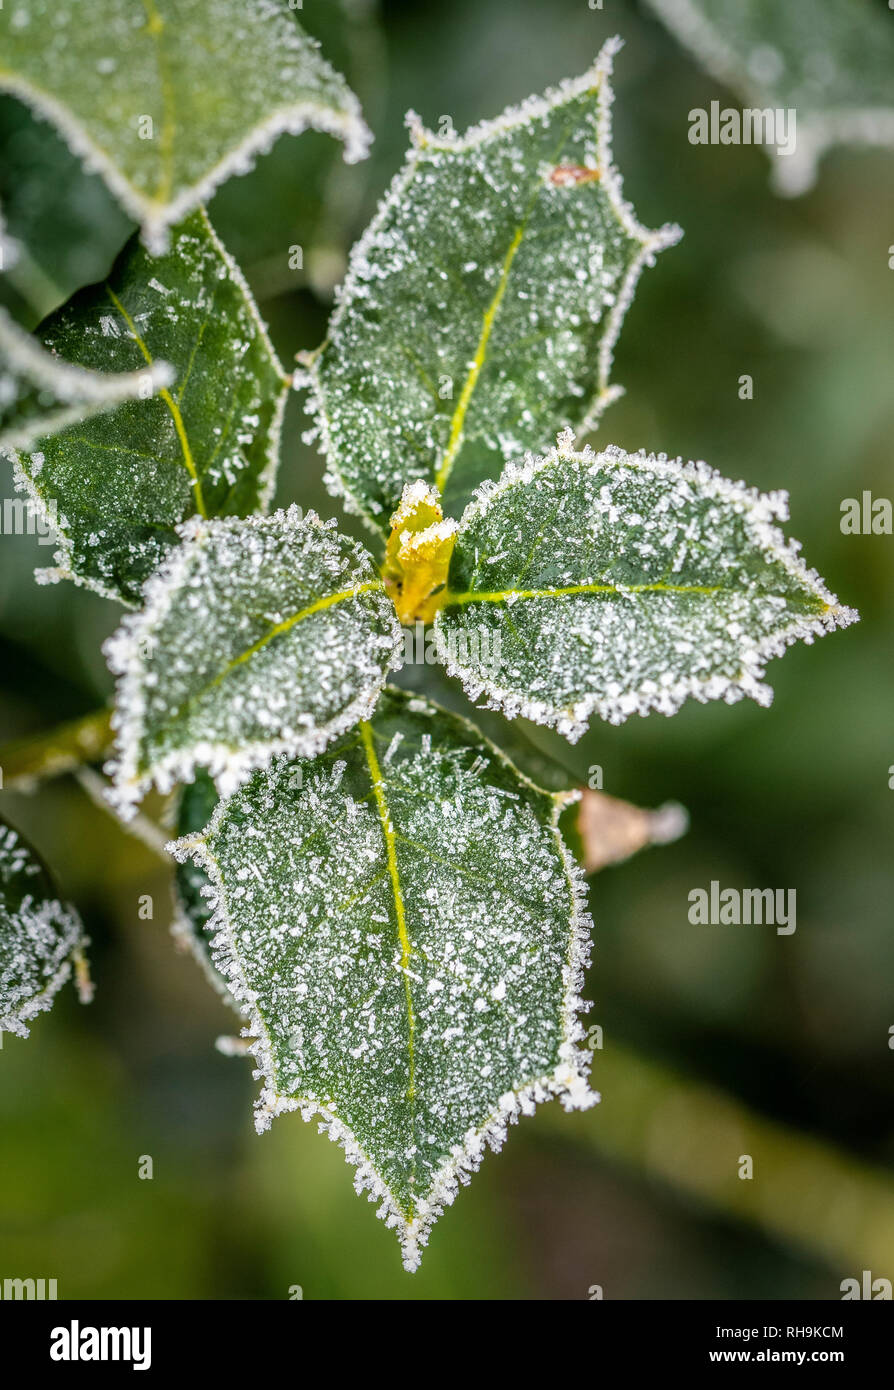 Holly leaves covered in frost. Stock Photo